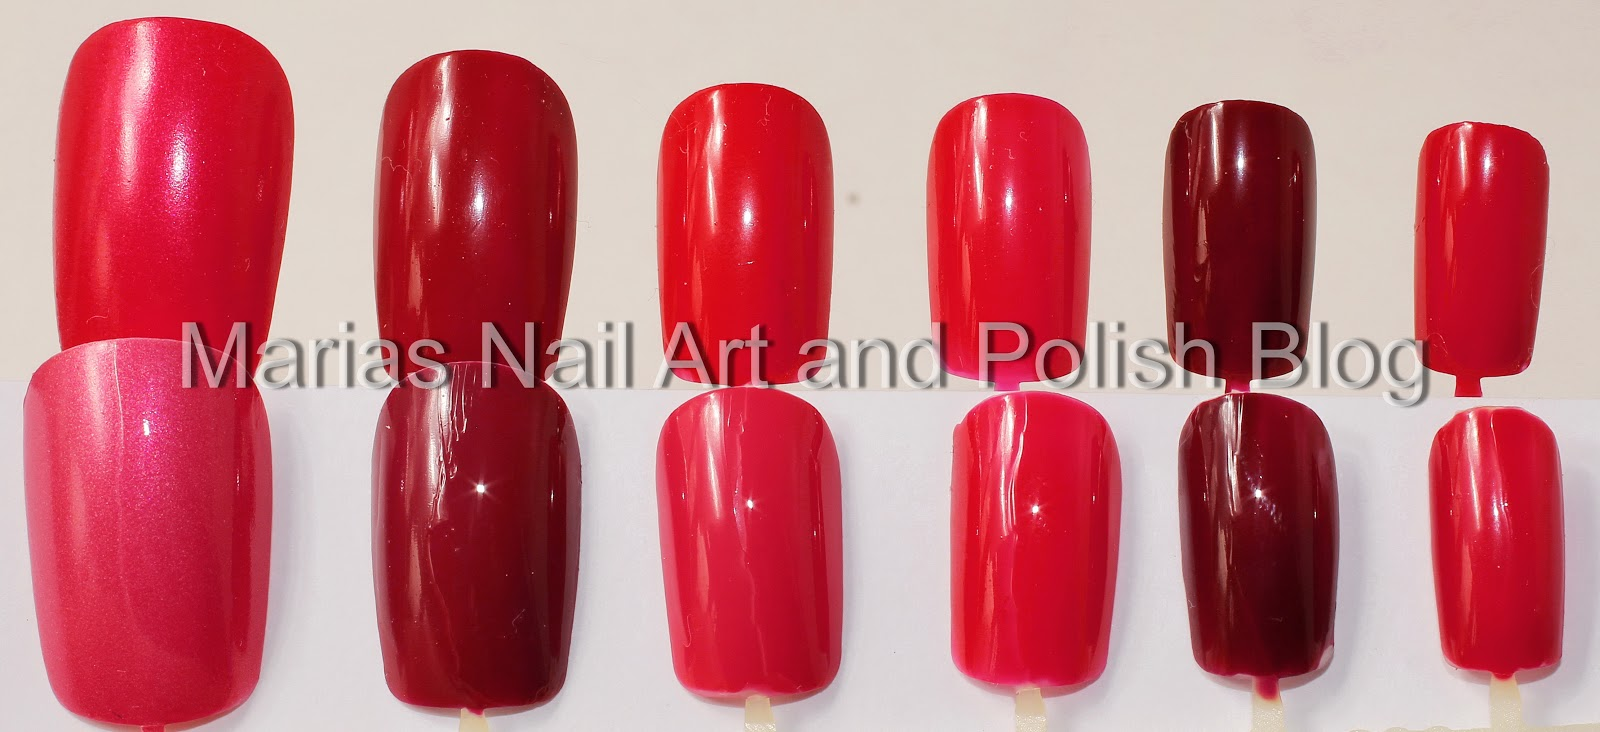 Marias Nail Art and Polish Blog: Fading nail polish - 18 months in a ...